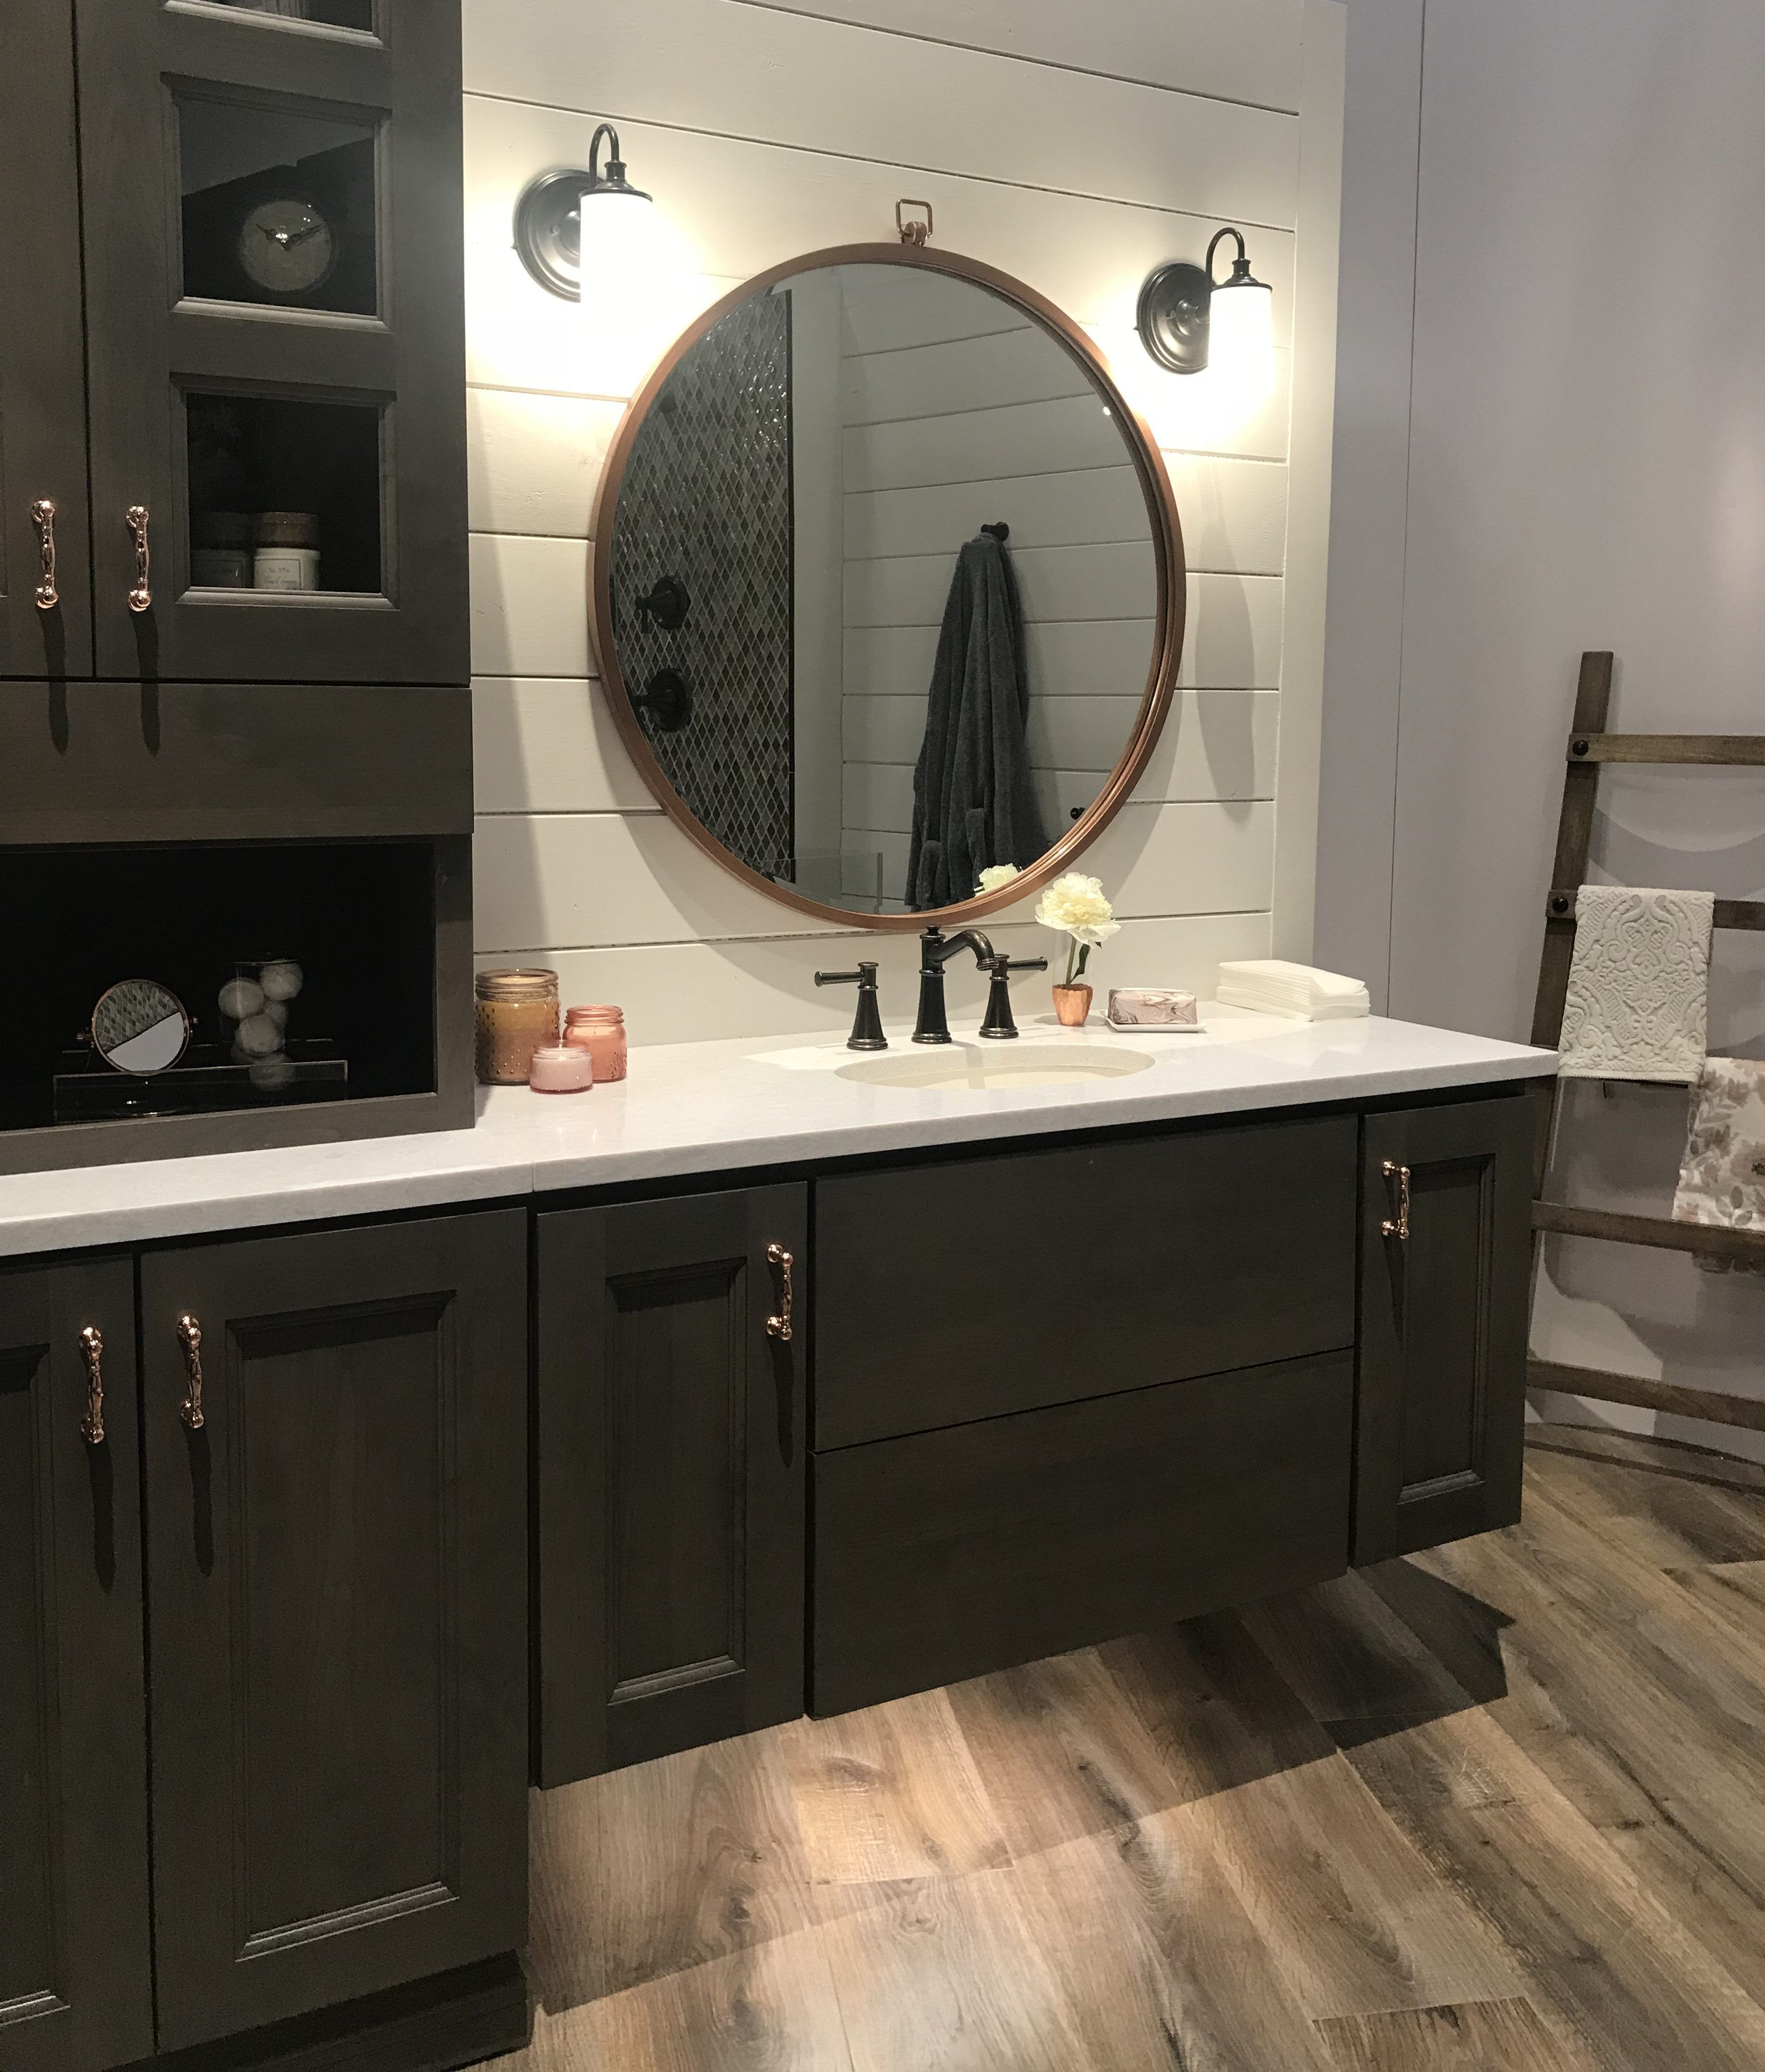 Five Times Wood And White Combined To Create Design Meet Style Round Mirror Bathroom Bathroom Inspiration Modern Bathroom Design